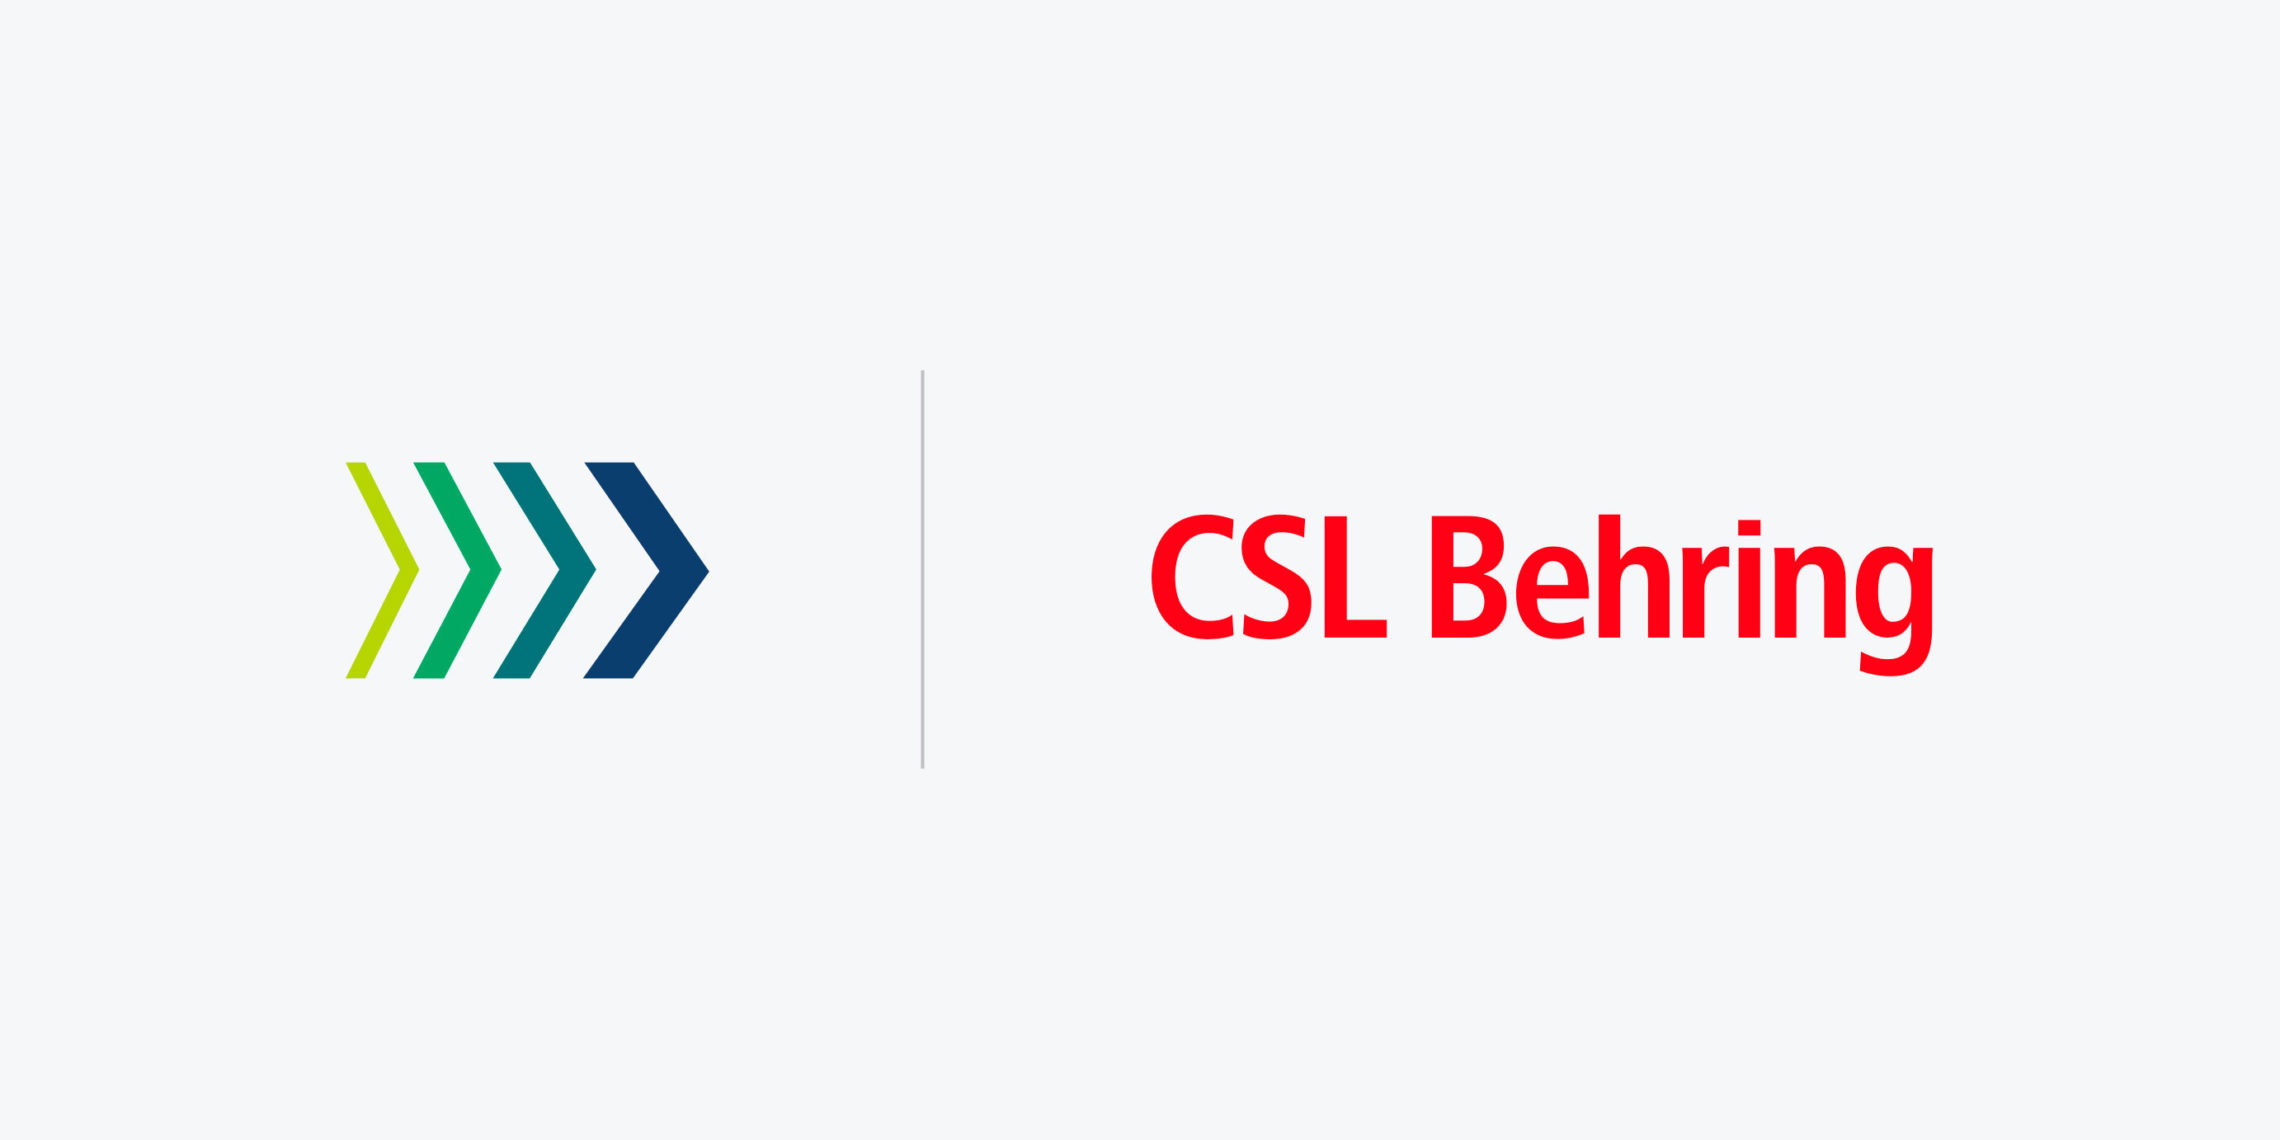 Blog body CSL Behring partnership